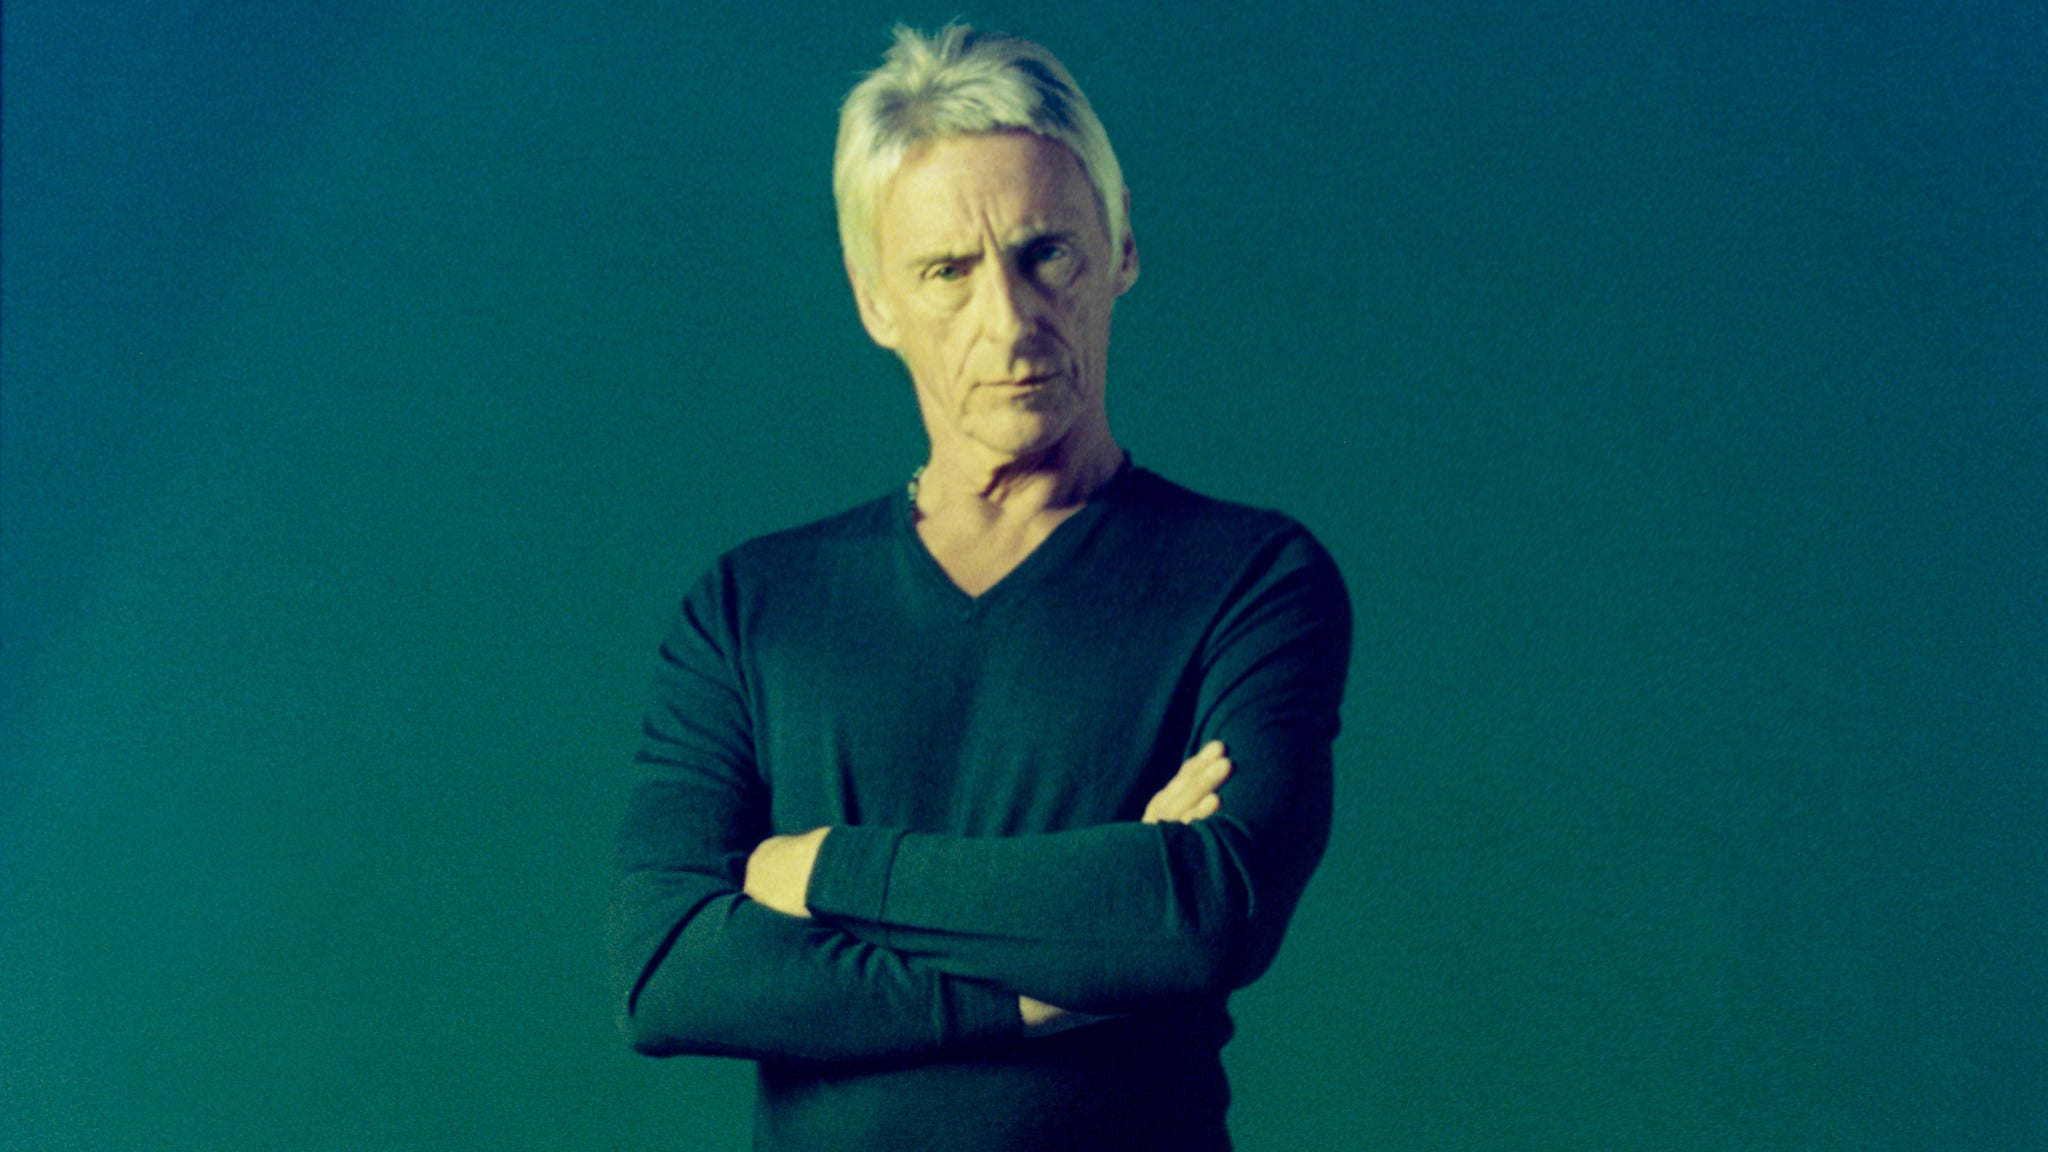 KCRW presents Paul Weller at House of Blues Anaheim